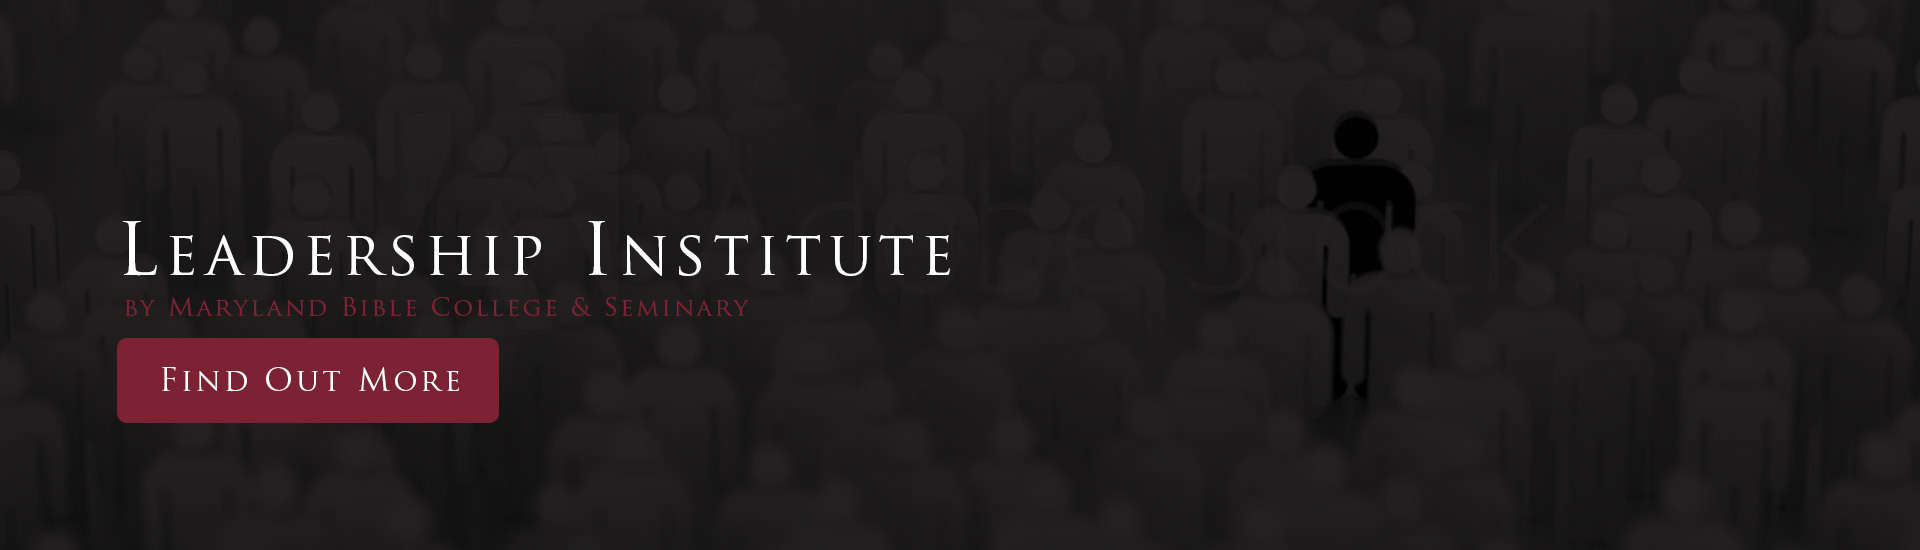 Leadership-Institute-People